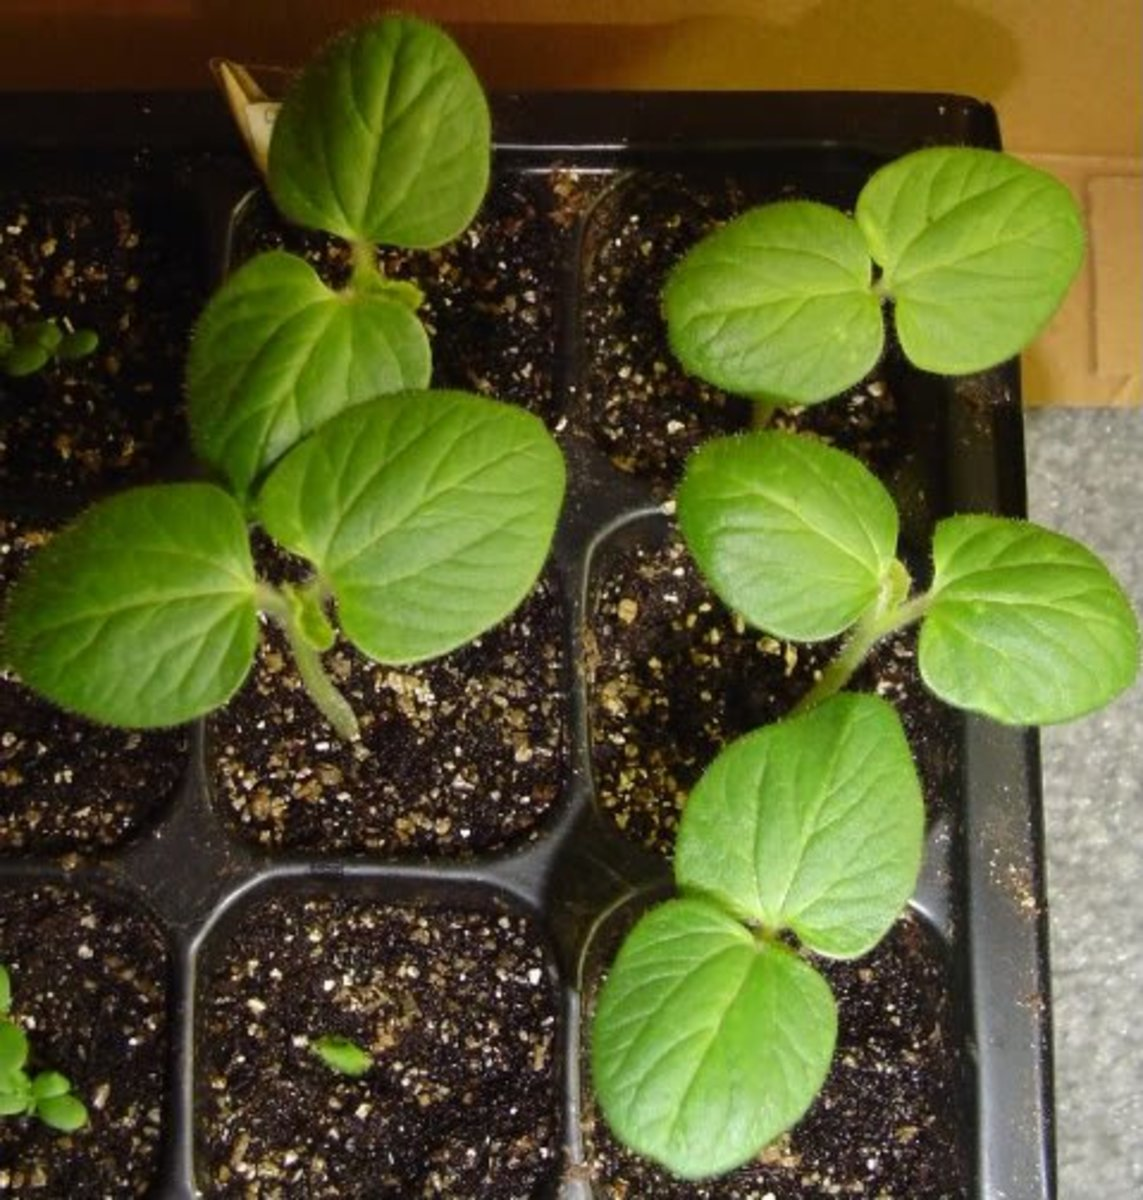 Or, you can transplant seedlings, like this okra.